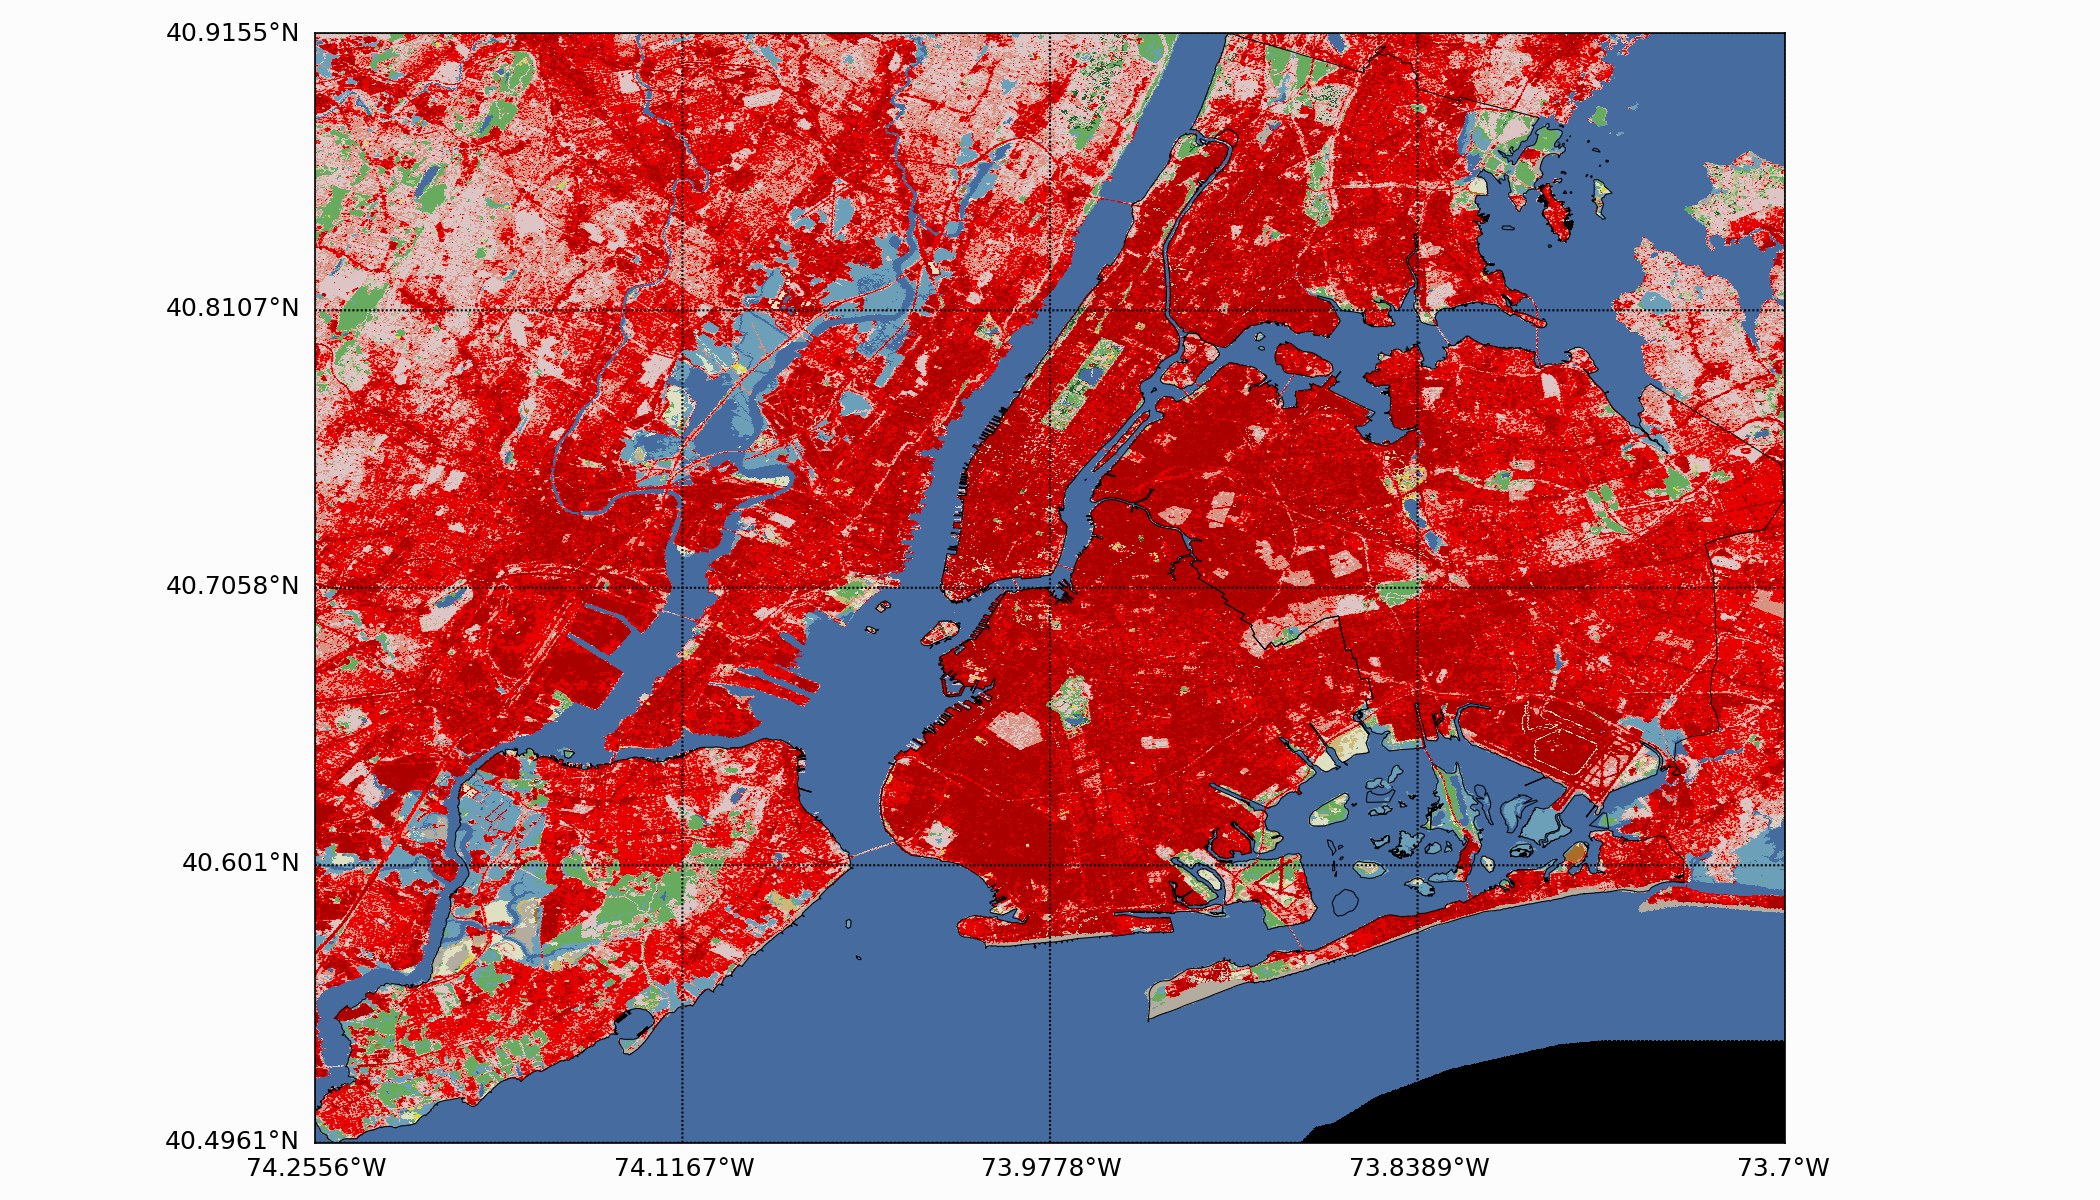 NYC_NLCD_mapped_colors.png